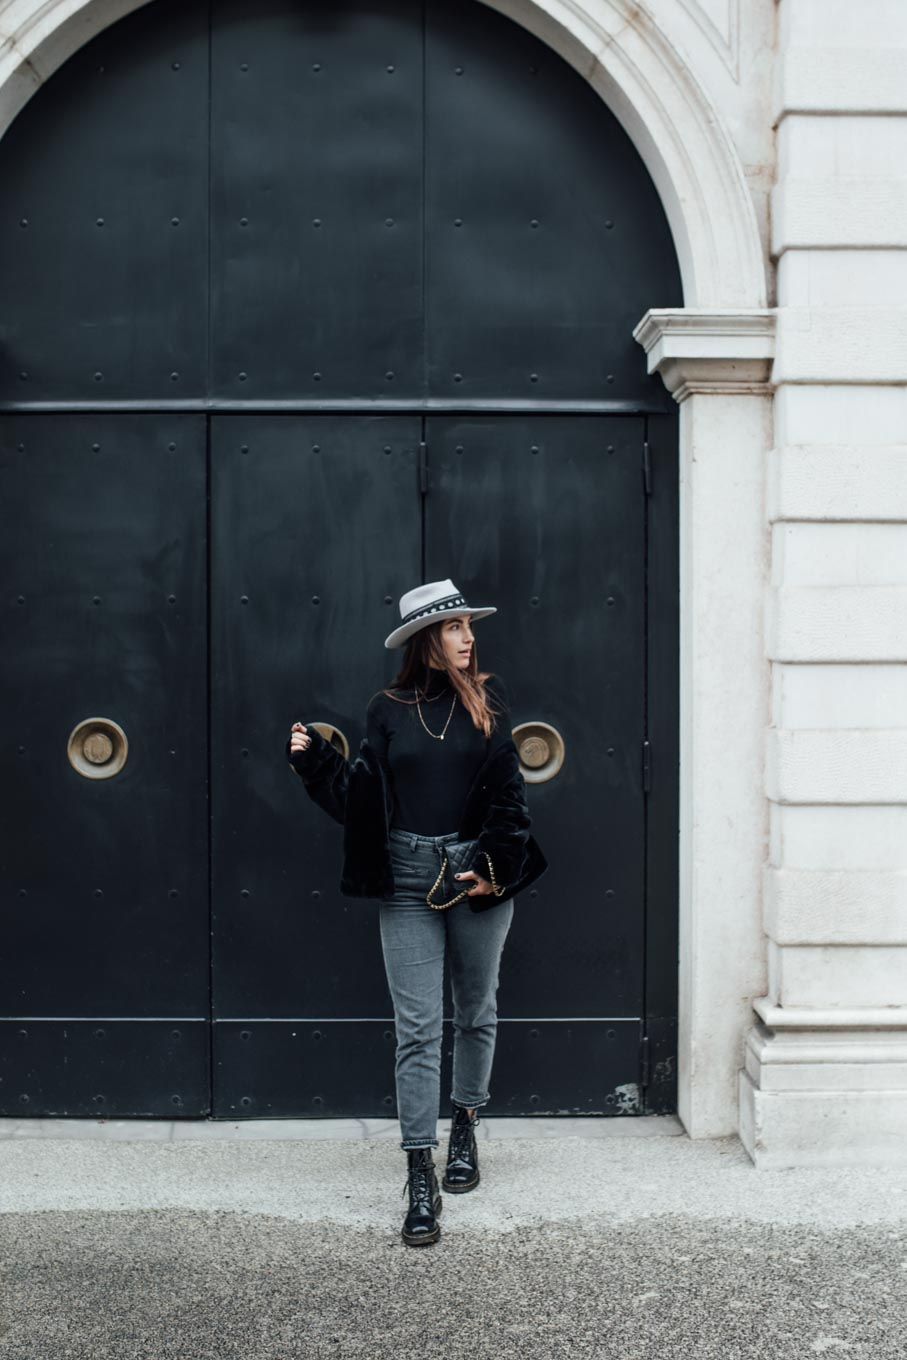 Outfit: Must Have Of The Season: Black Turtleneck | Closes Pedal Pusher Jeans, Chanel Wallet On Chain WOC, Dr. Martens Boots, Nomade Moderne Hat, Leo Mathild Jewelry | you rock my life